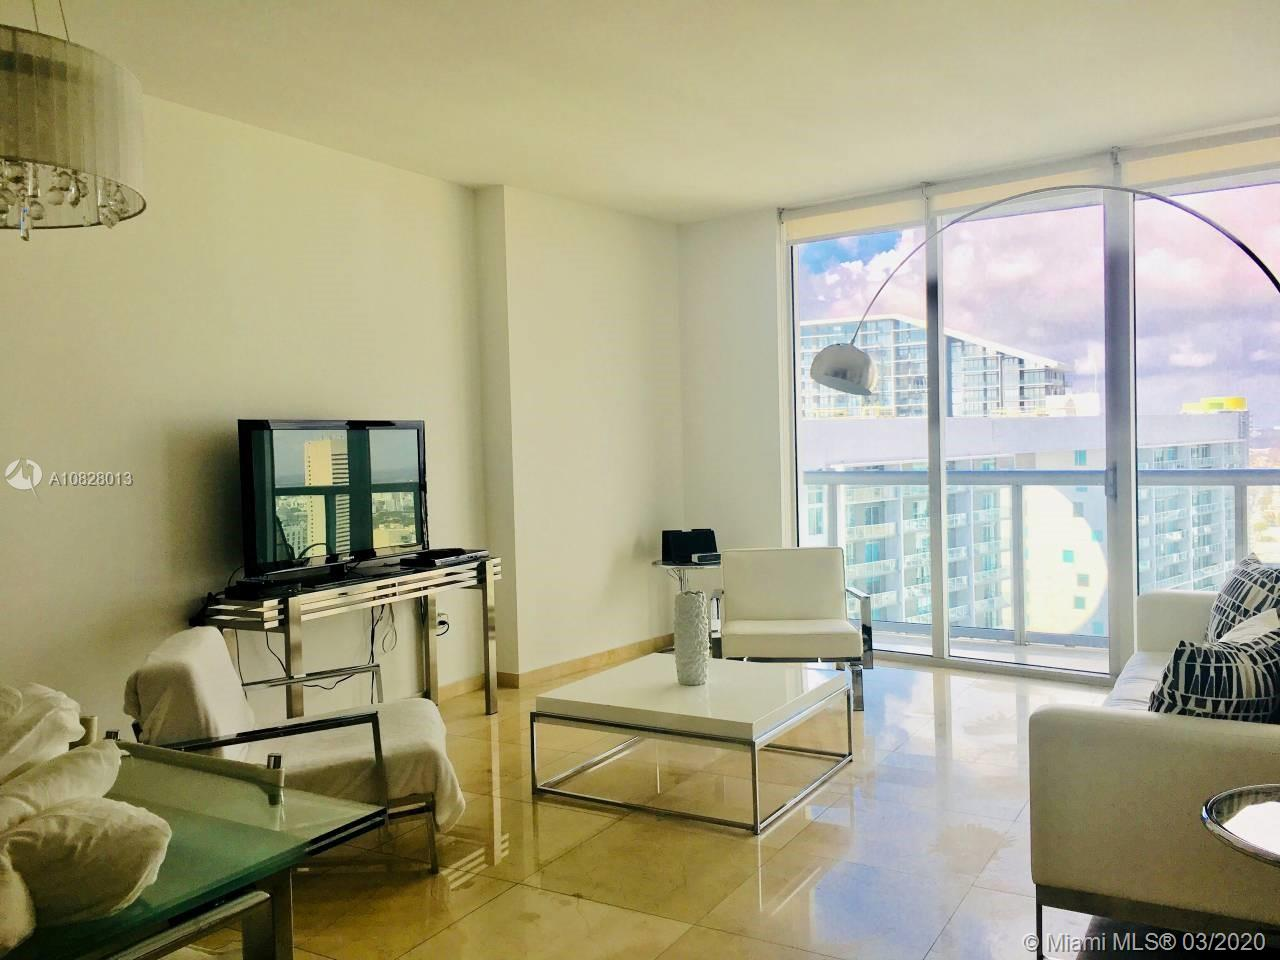 Icon Brickell W tower, Beautiful high floor unit fully furnished with porcelain floors. Sub-zero/ wolf kitchen appliances package. European kitchen, with city and river views, state of art spa and gym, restaurants, infinity edge pools, billboard room, party room, concierge, valet. Perfect for investors with daily rentals and Airbnb allowed.